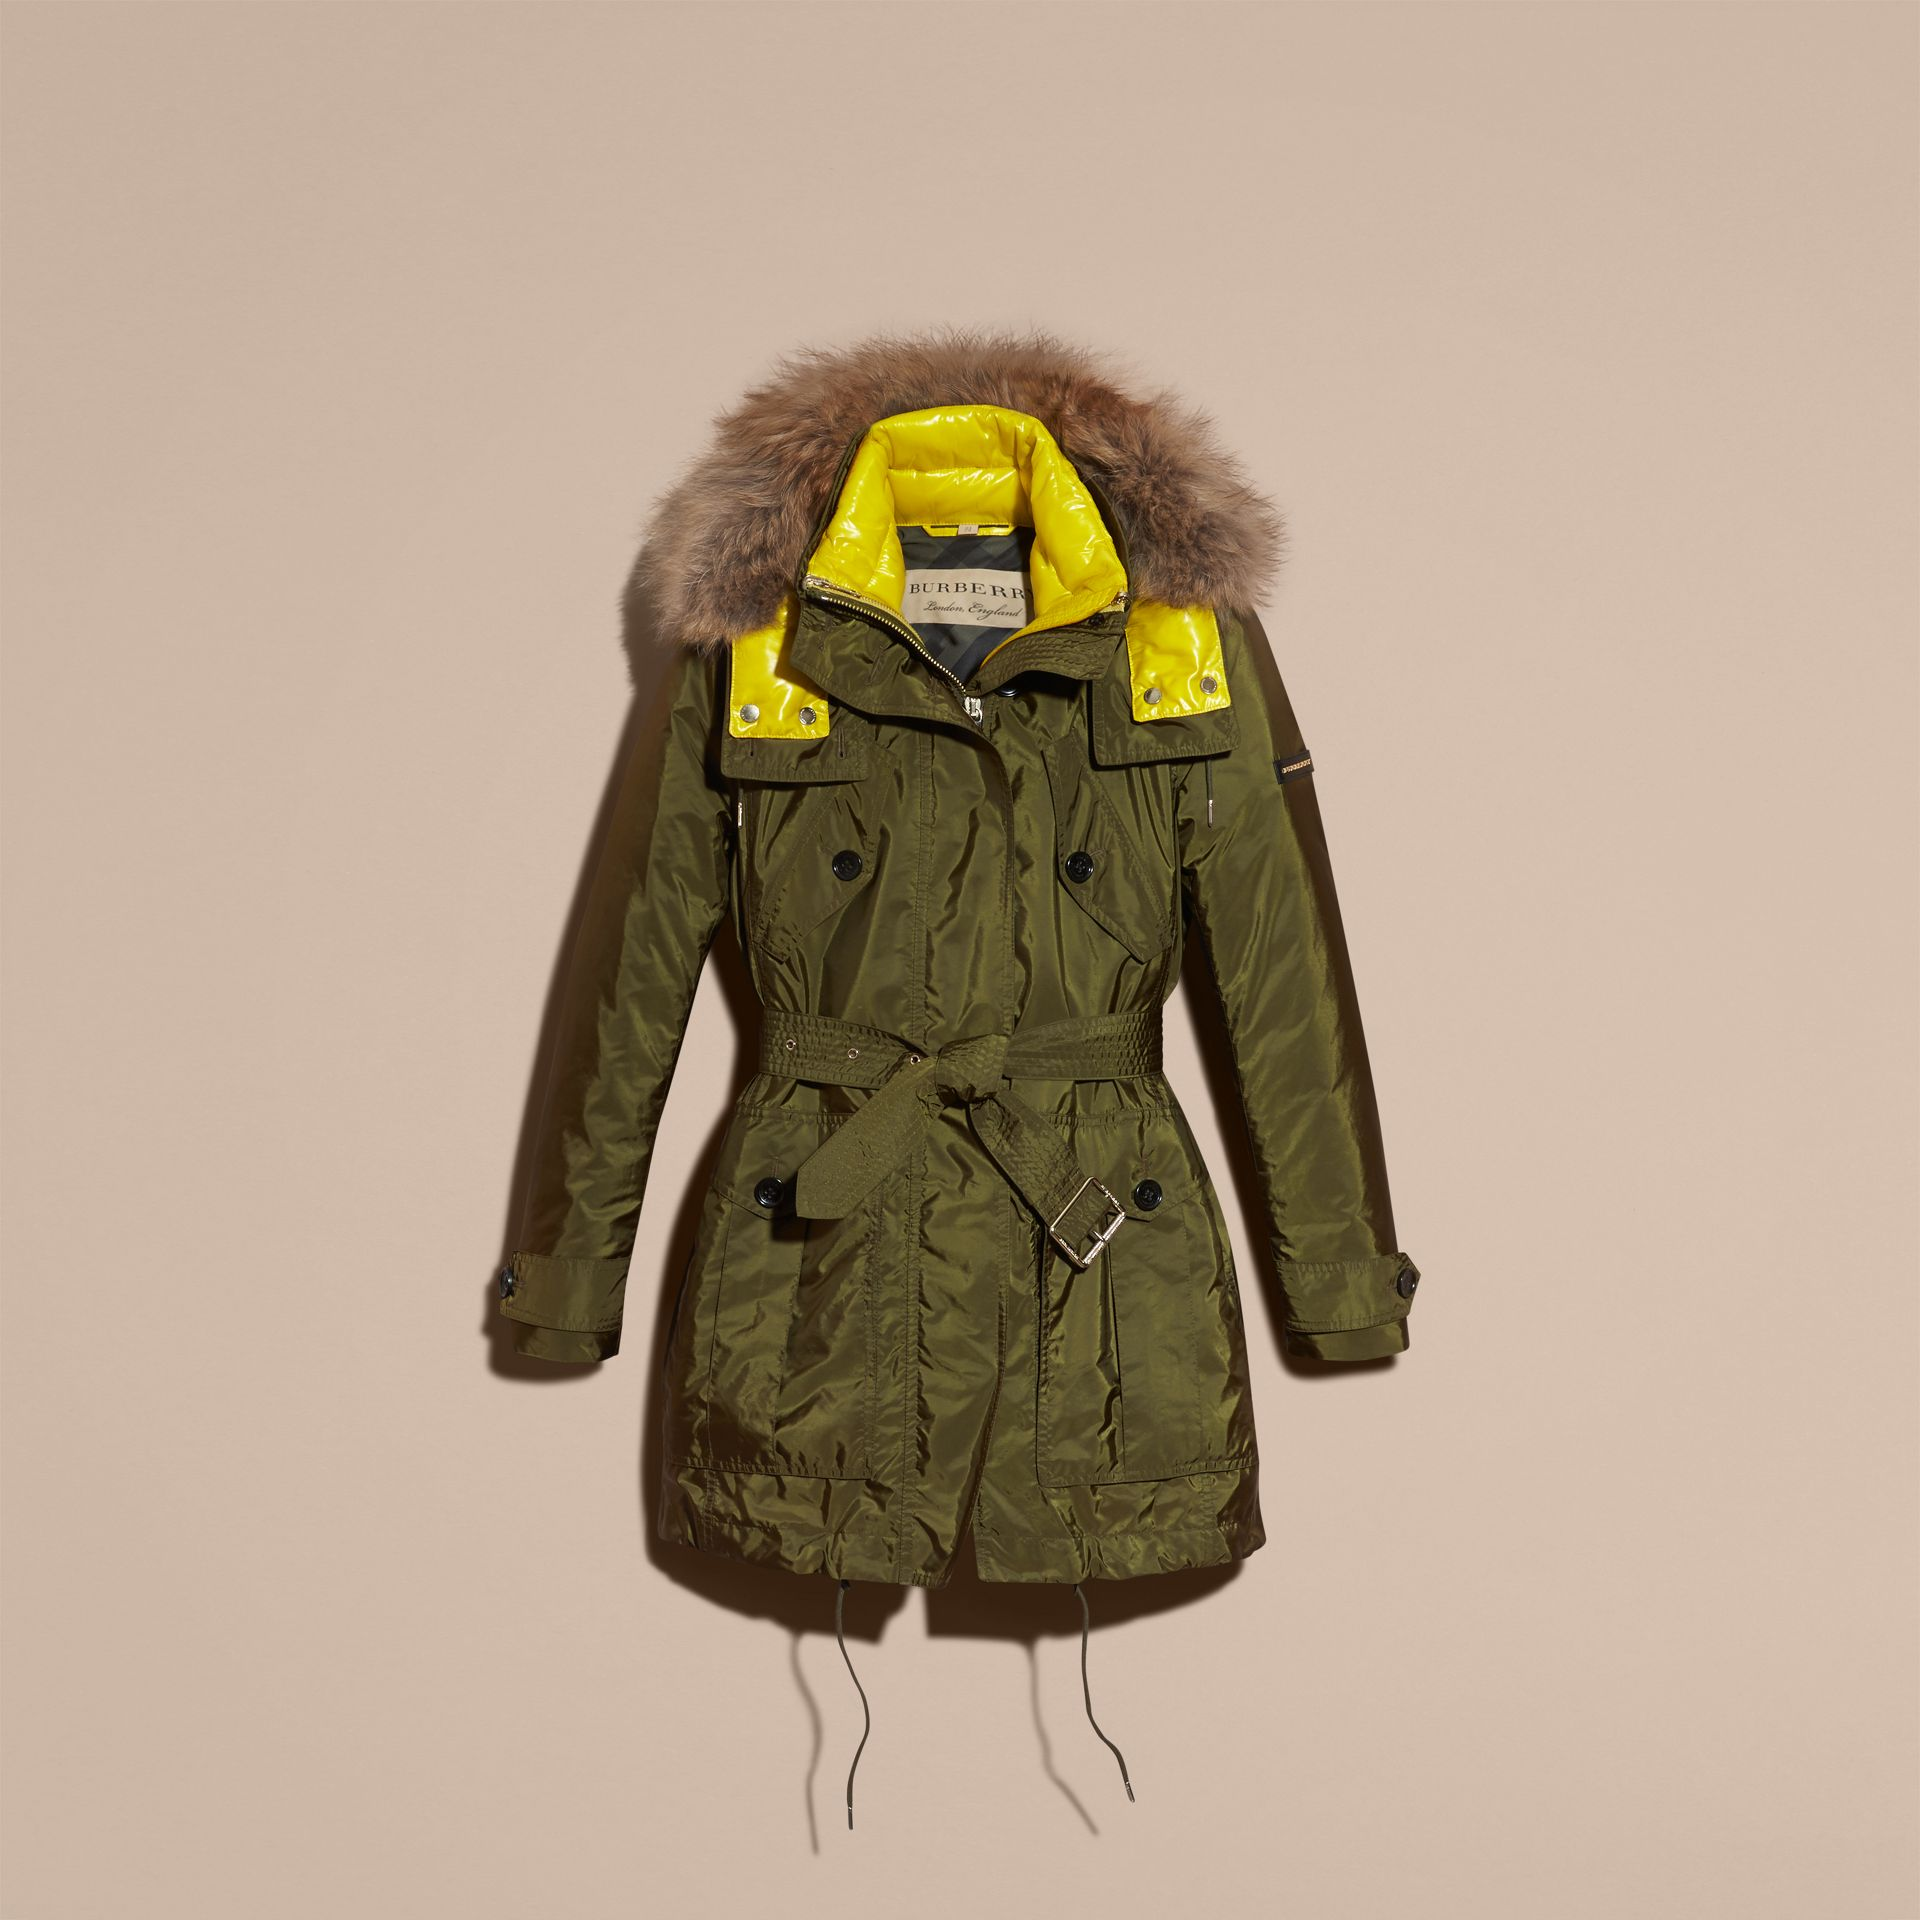 Fur-trimmed Parka with Detachable Down-filled Jacket Bright Moss Green - gallery image 4